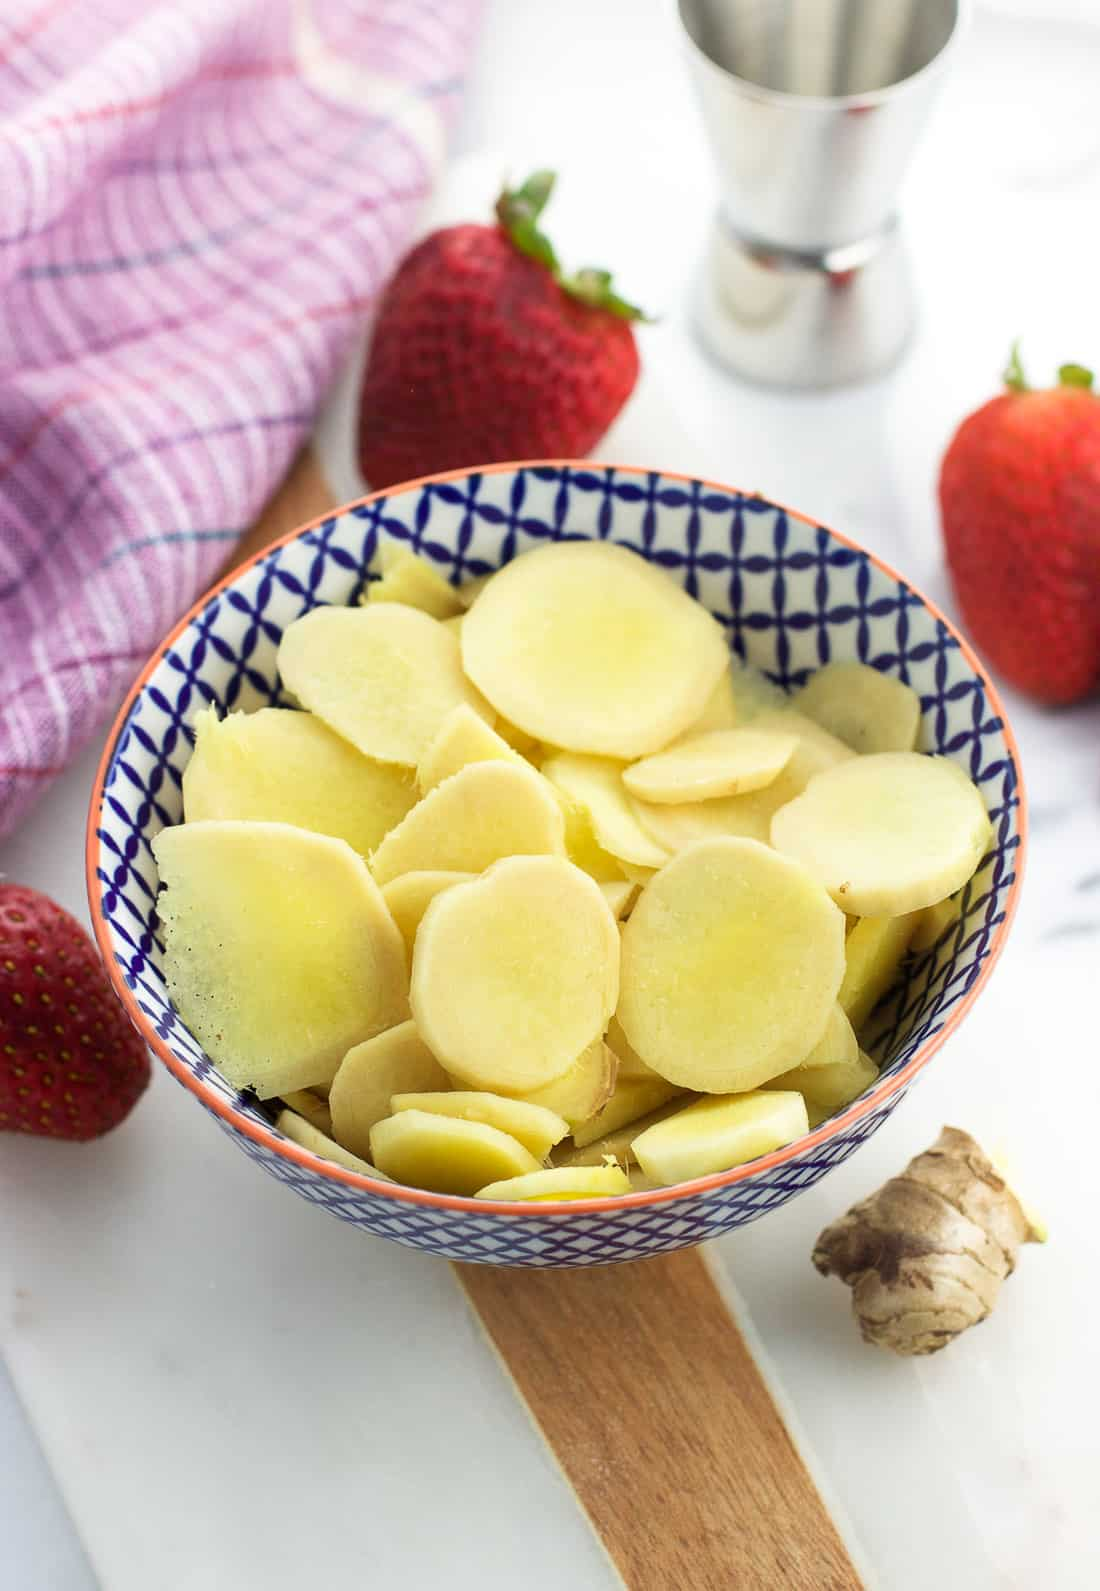 Fresh ginger slices in a small bowl